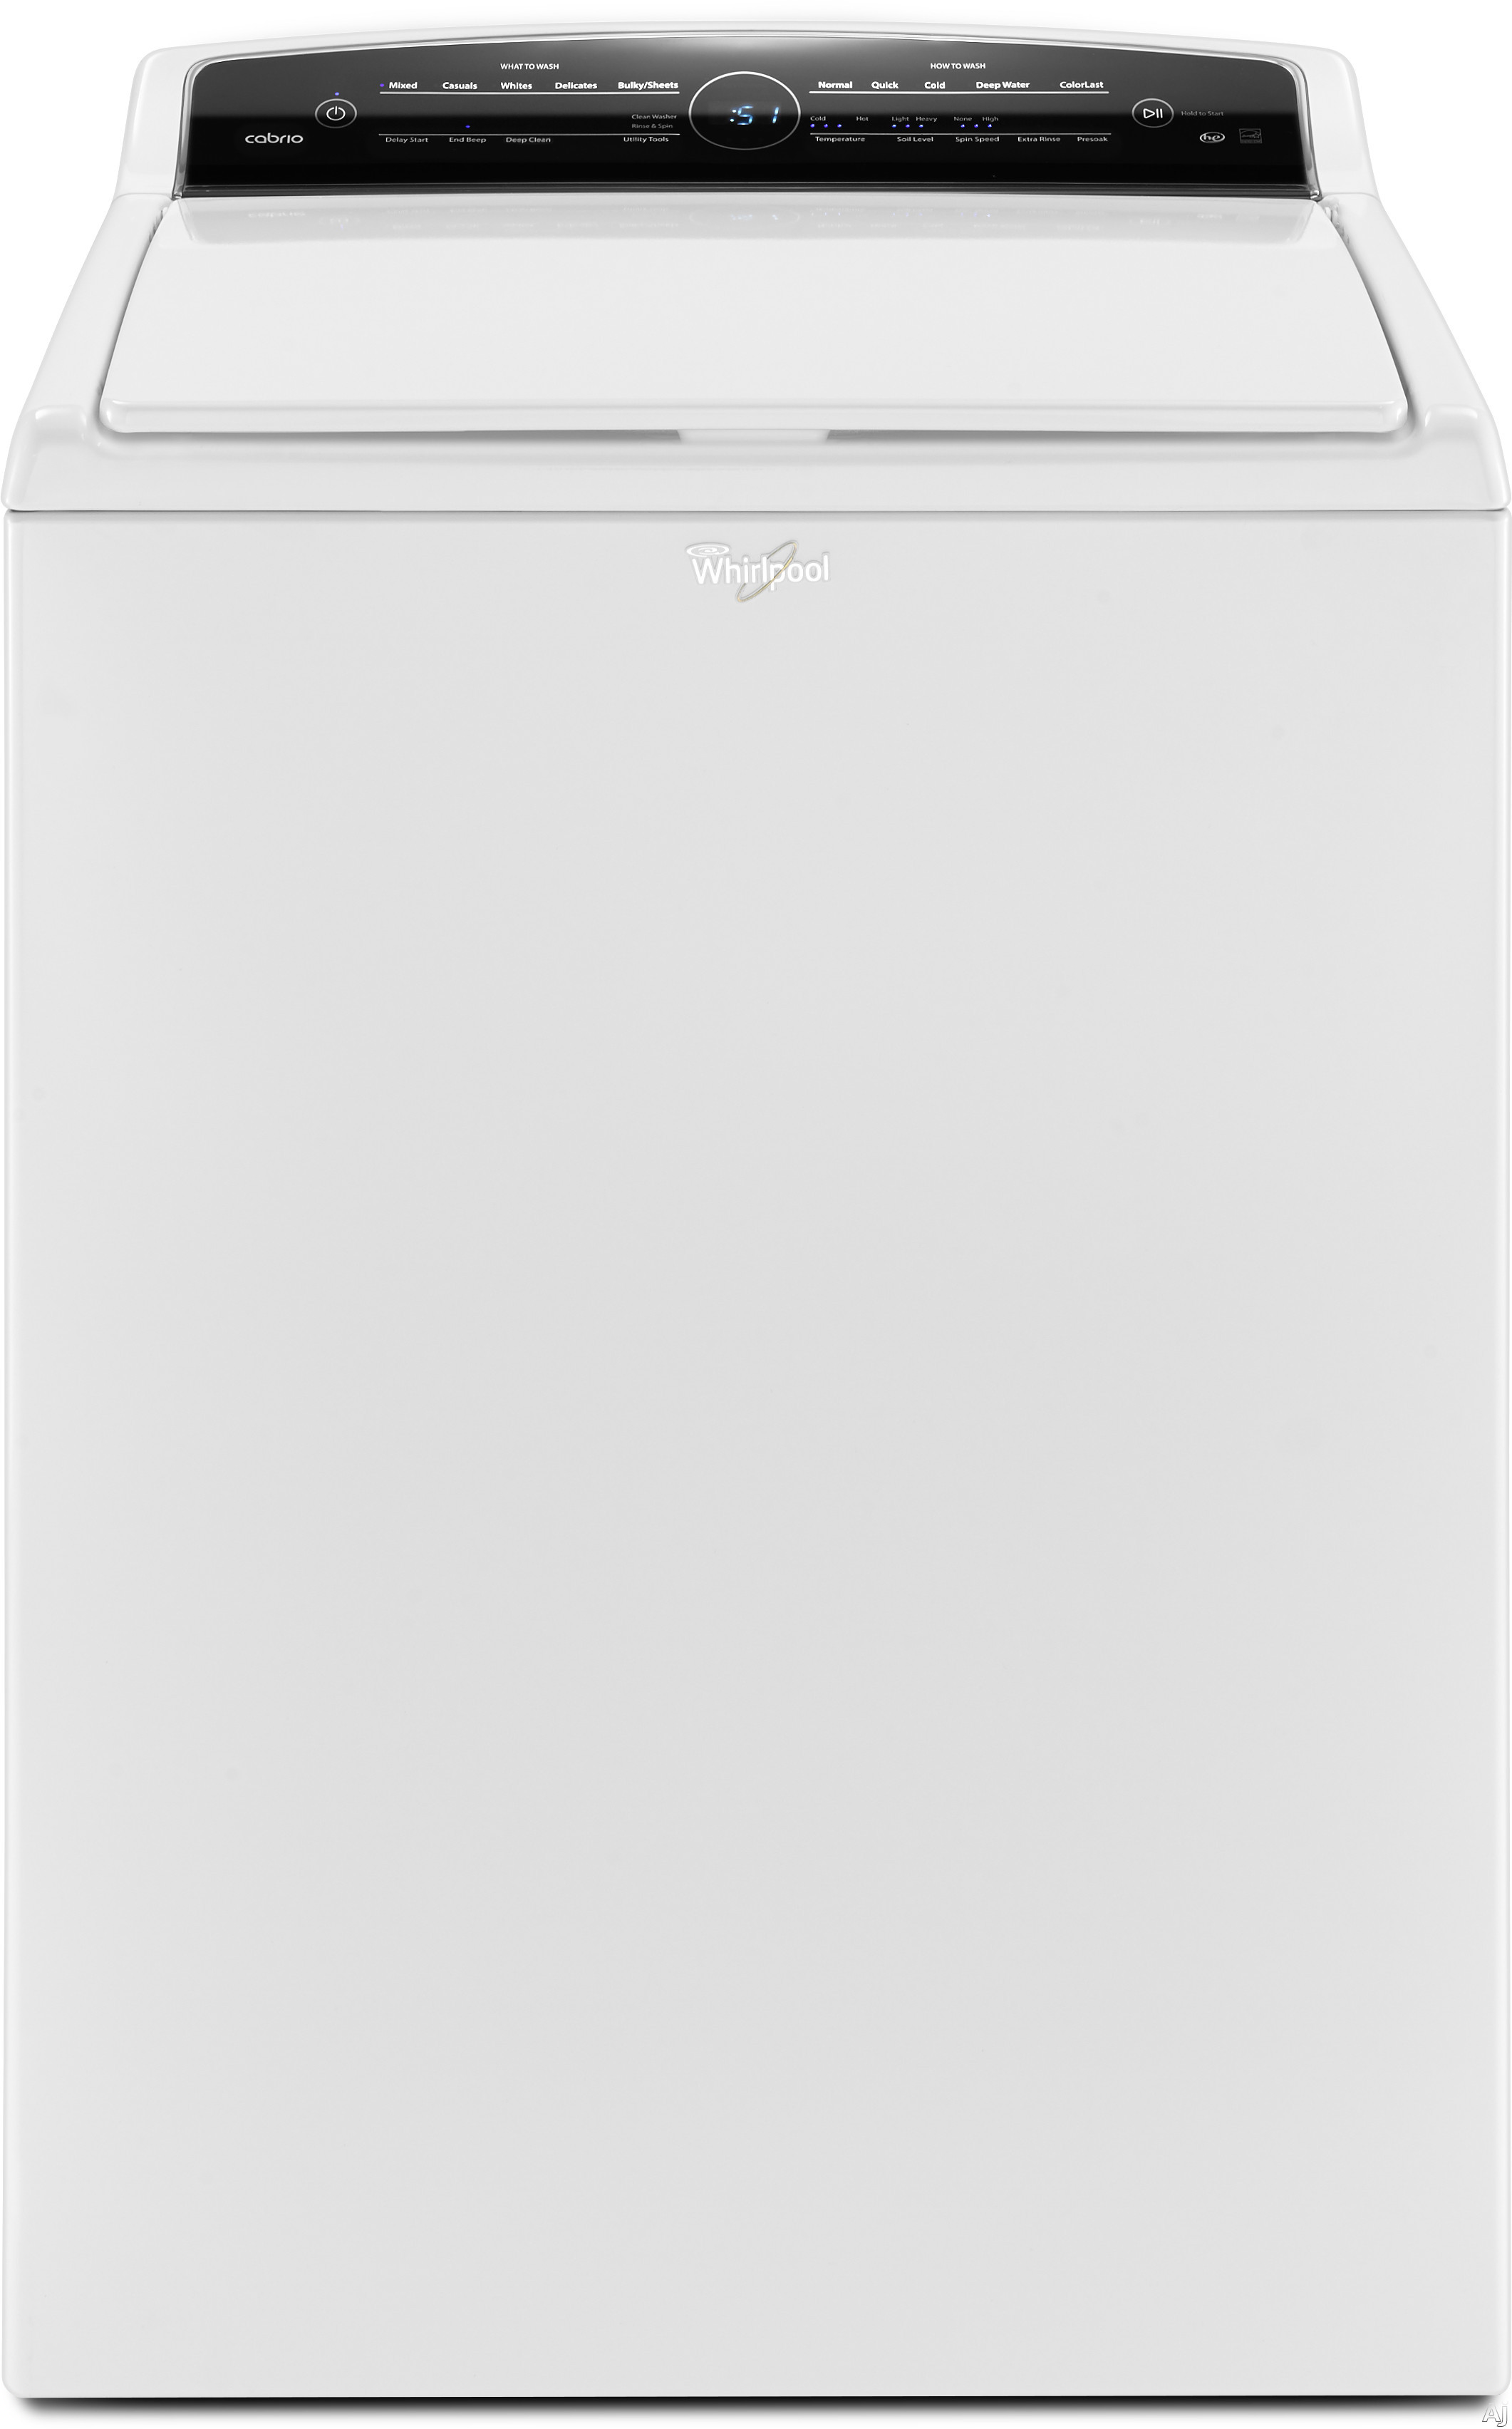 Image of Whirlpool Cabrio WTW7000DW 28 Inch 4.8 cu. ft. Top Load Washer with 12 Wash Cycles, 850 RPM, Quick Wash, Presoak, ColorLast, Adaptive Wash Technology w/ Active Bloom Wash Action, Low Profile Impeller, Stainless Steel Wash Basket, Clean Washer Cycle with A